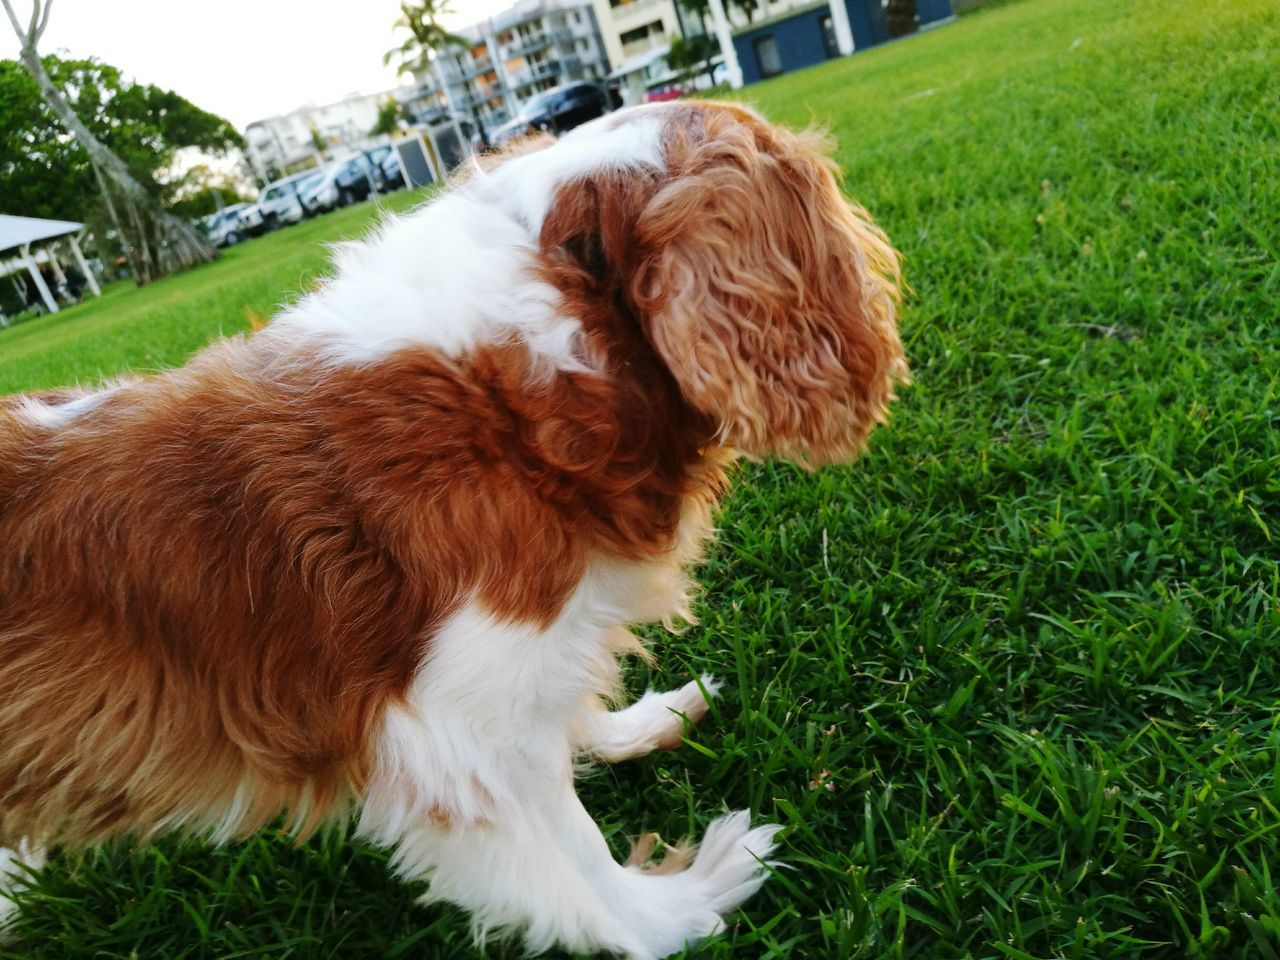 pets, domestic animals, dog, grass, animal themes, mammal, one animal, green color, brown, day, outdoors, no people, cavalier king charles spaniel, nature, close-up